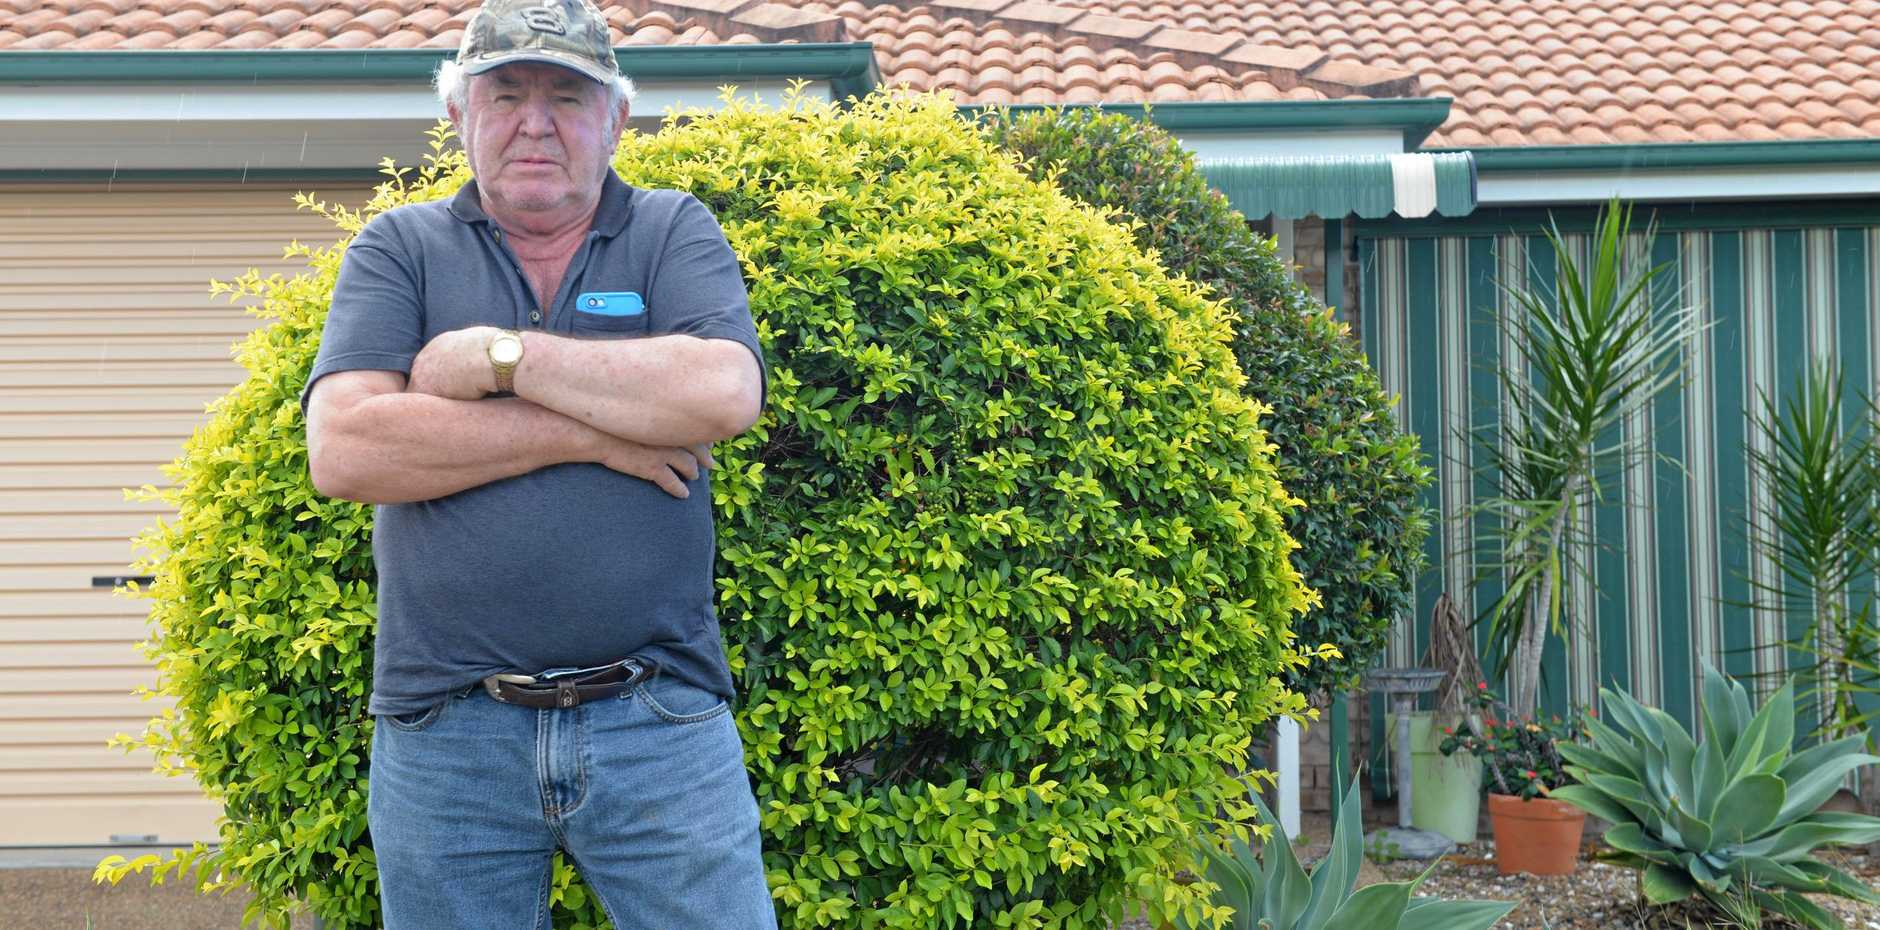 HOT WATER: Ronald Burton's frustrations are increasing as he wait for his home to be repaired after a leaking hot water system caused mould in his house.